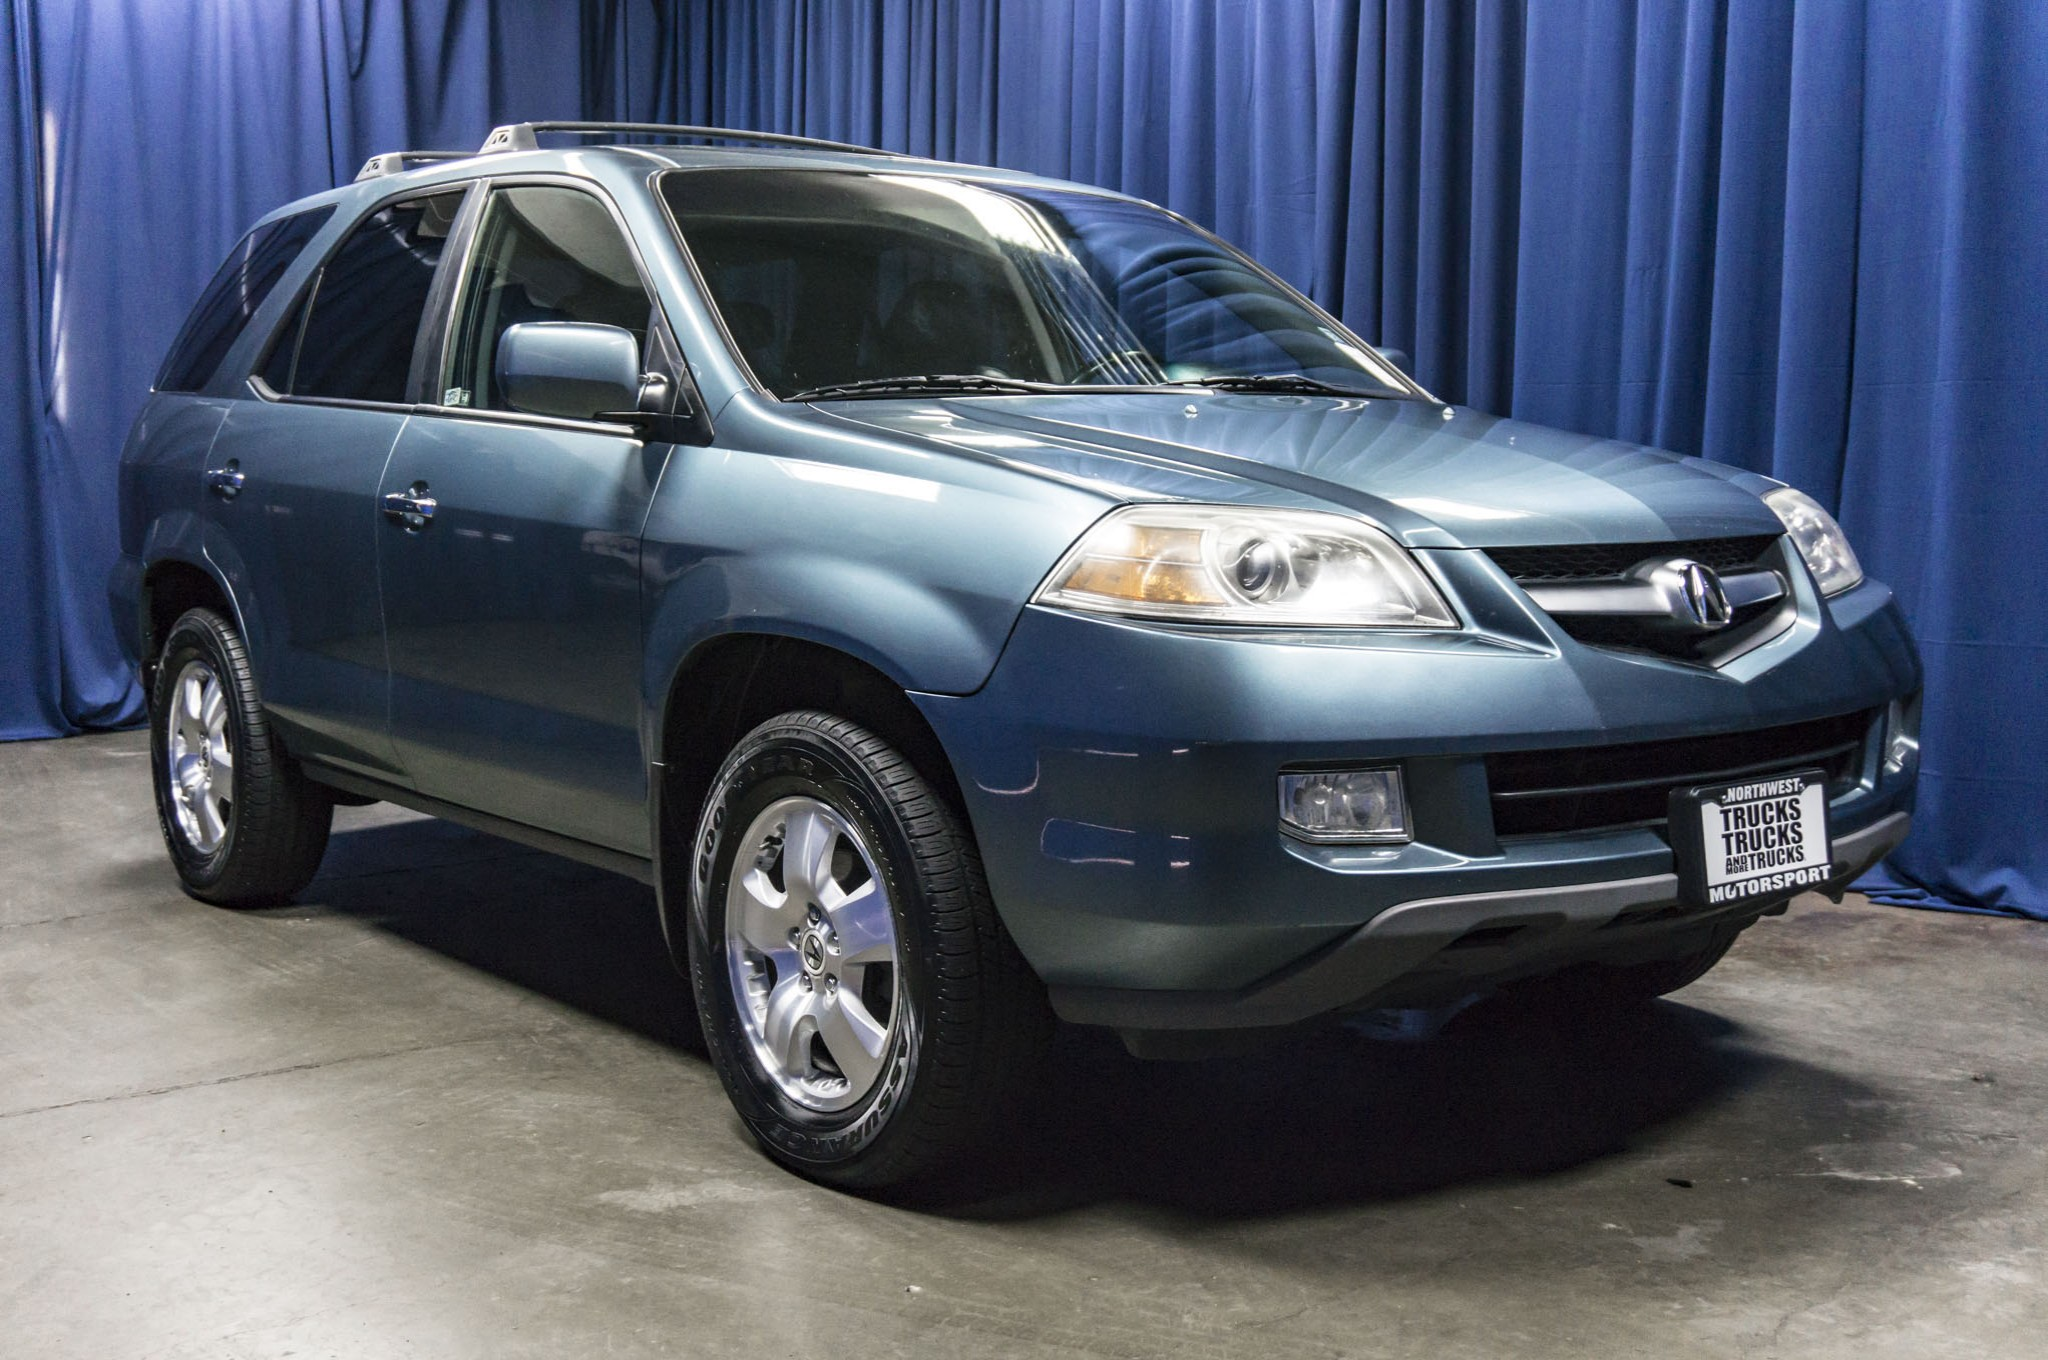 auto mdx awd suv somerville for in veh sales sale ma acura webster